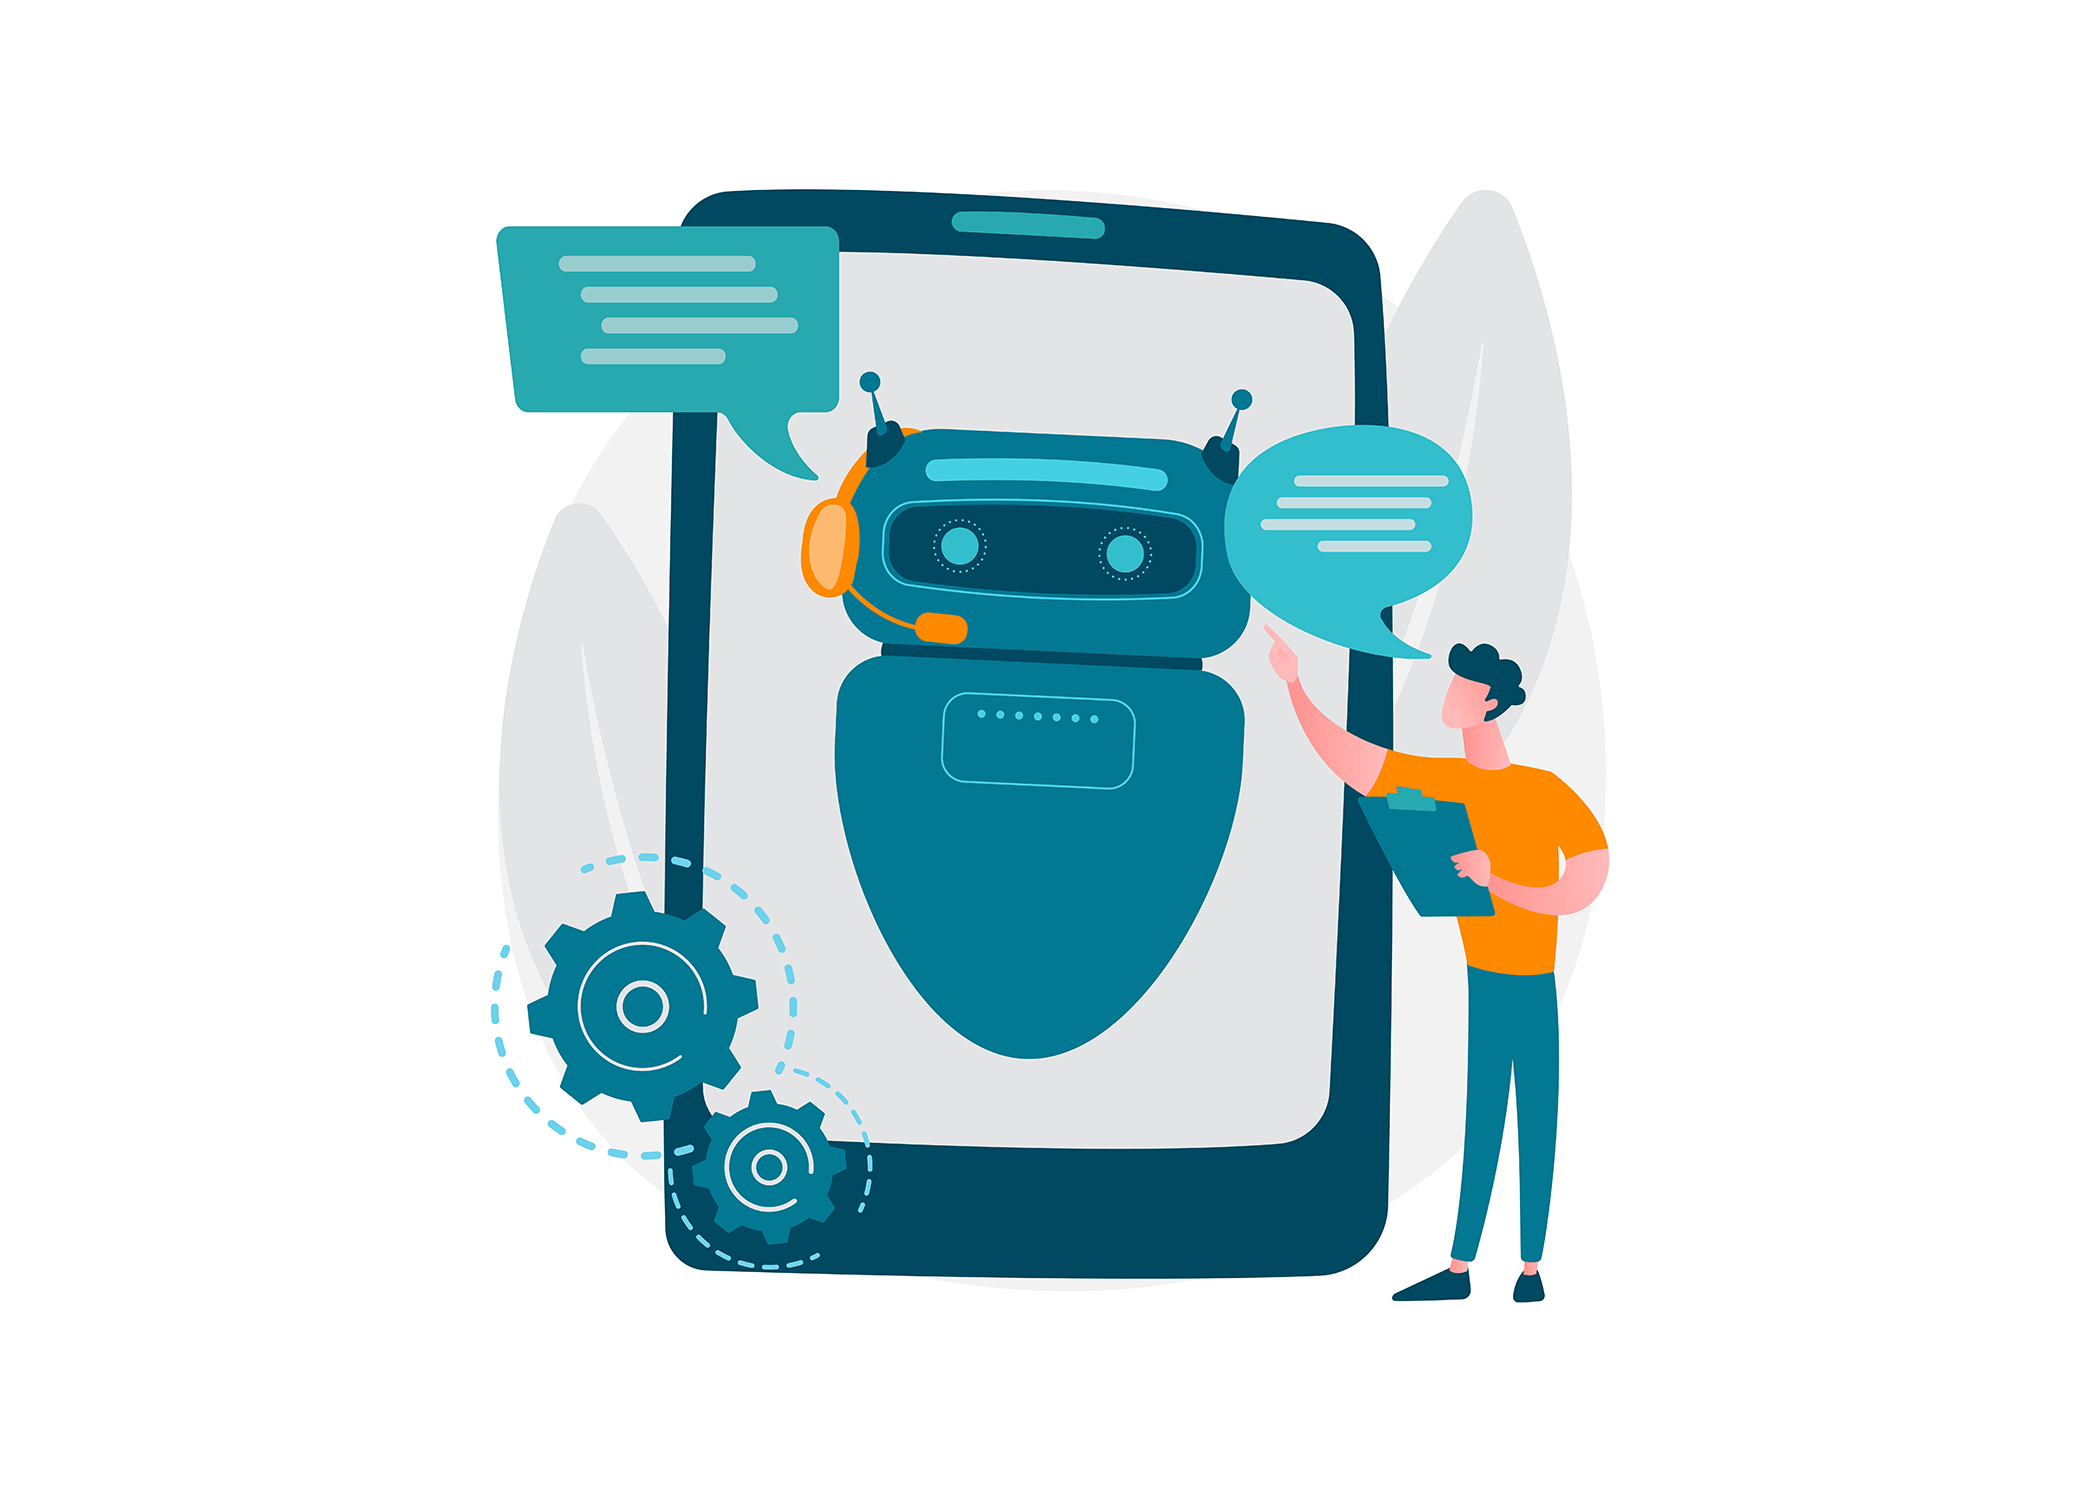 chatbot project for data science beginners